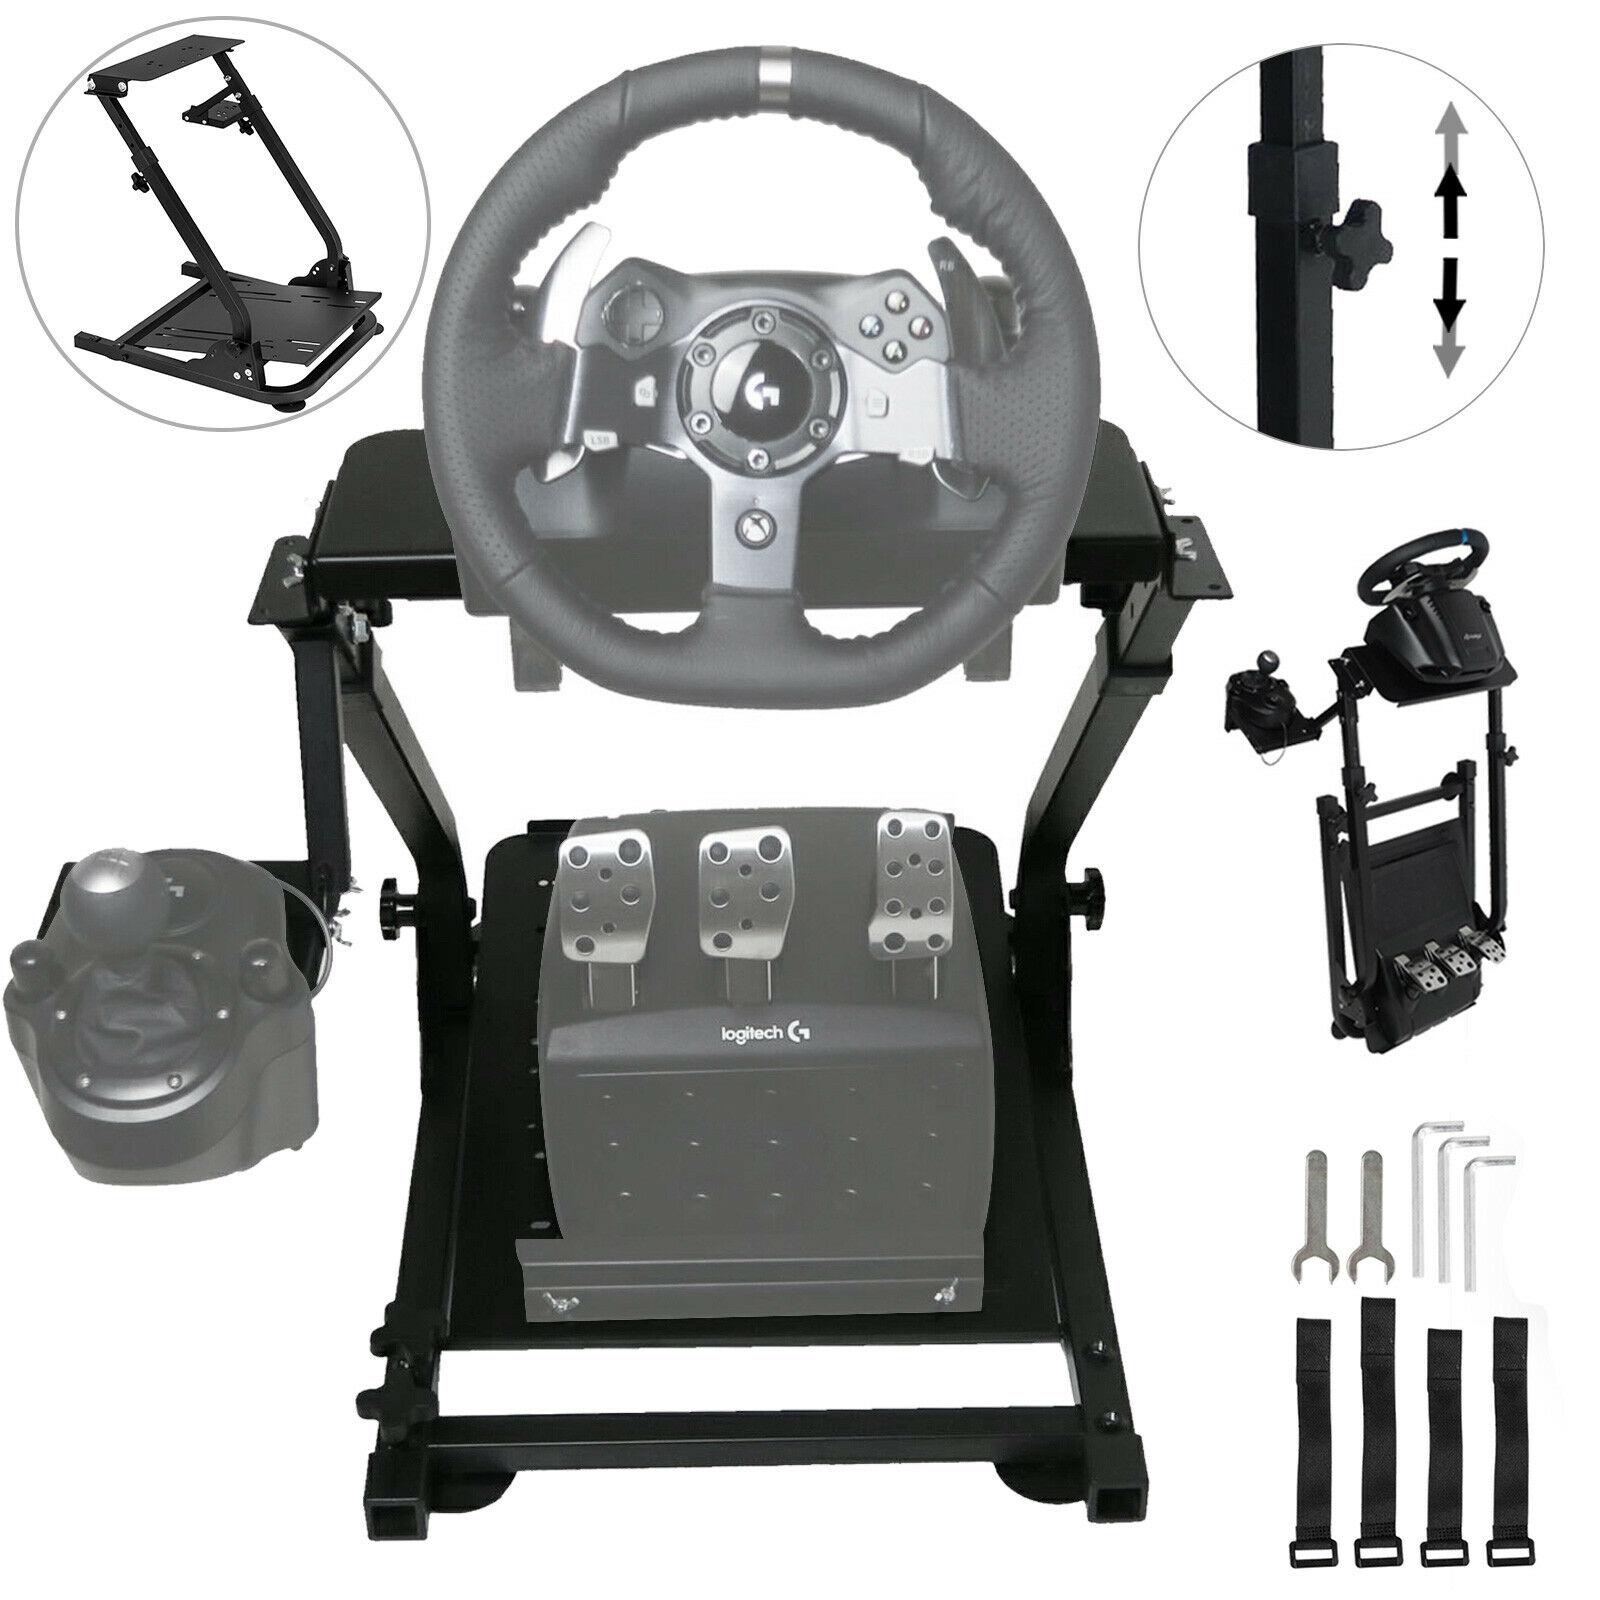 Free Shipping Self-Career Race Steering Wheel Support For Logitech G25 G27 G29 And G920 Folding Steering Wheel Stand